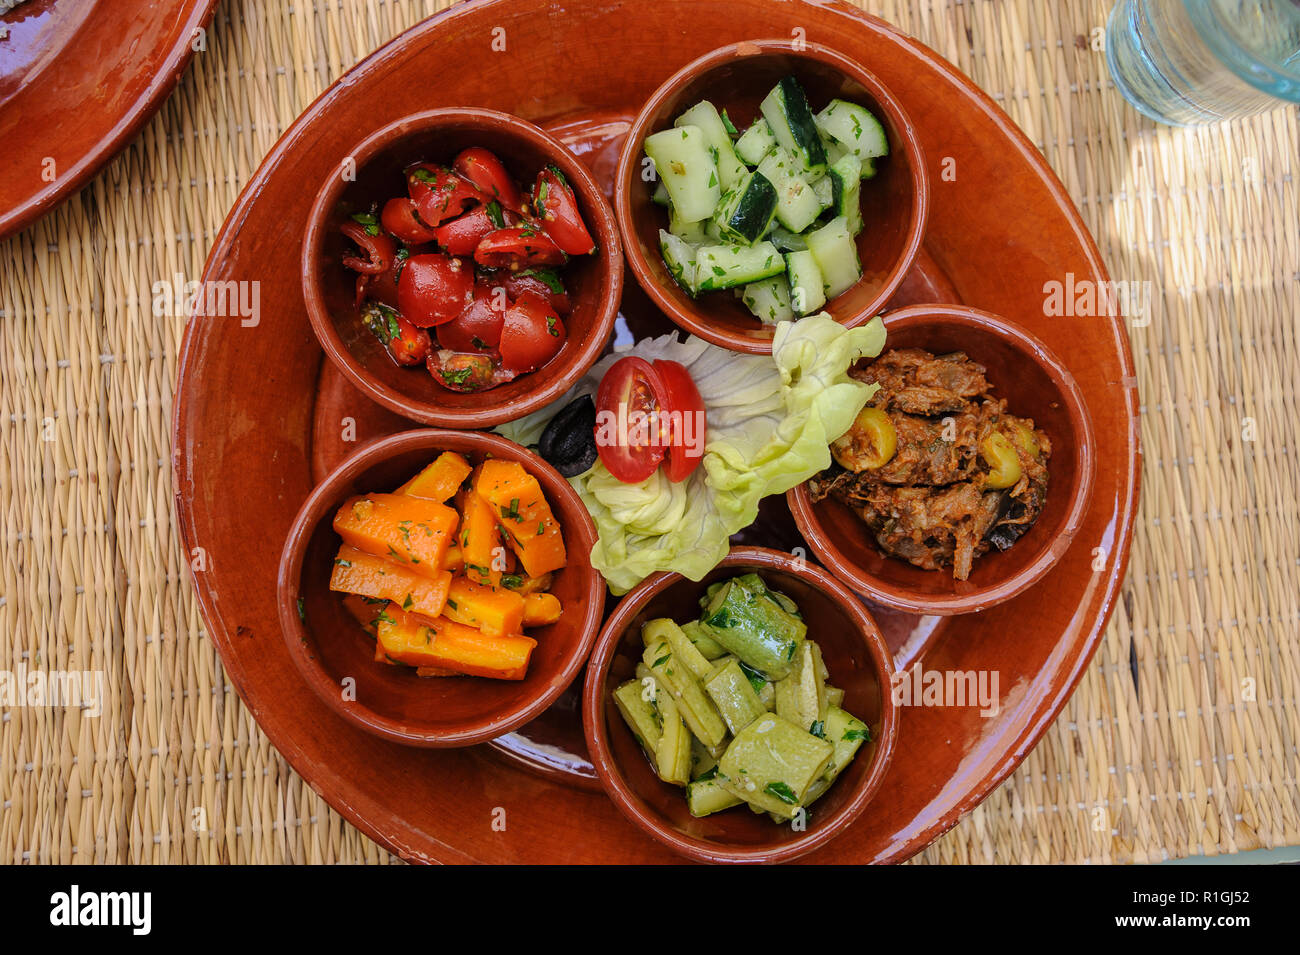 18-04-11. Marrakech, Morocco.  Typical Morrocan salad of vegetables and pickled vegetables. Photo © Simon Grosset / Q Photography - Stock Image